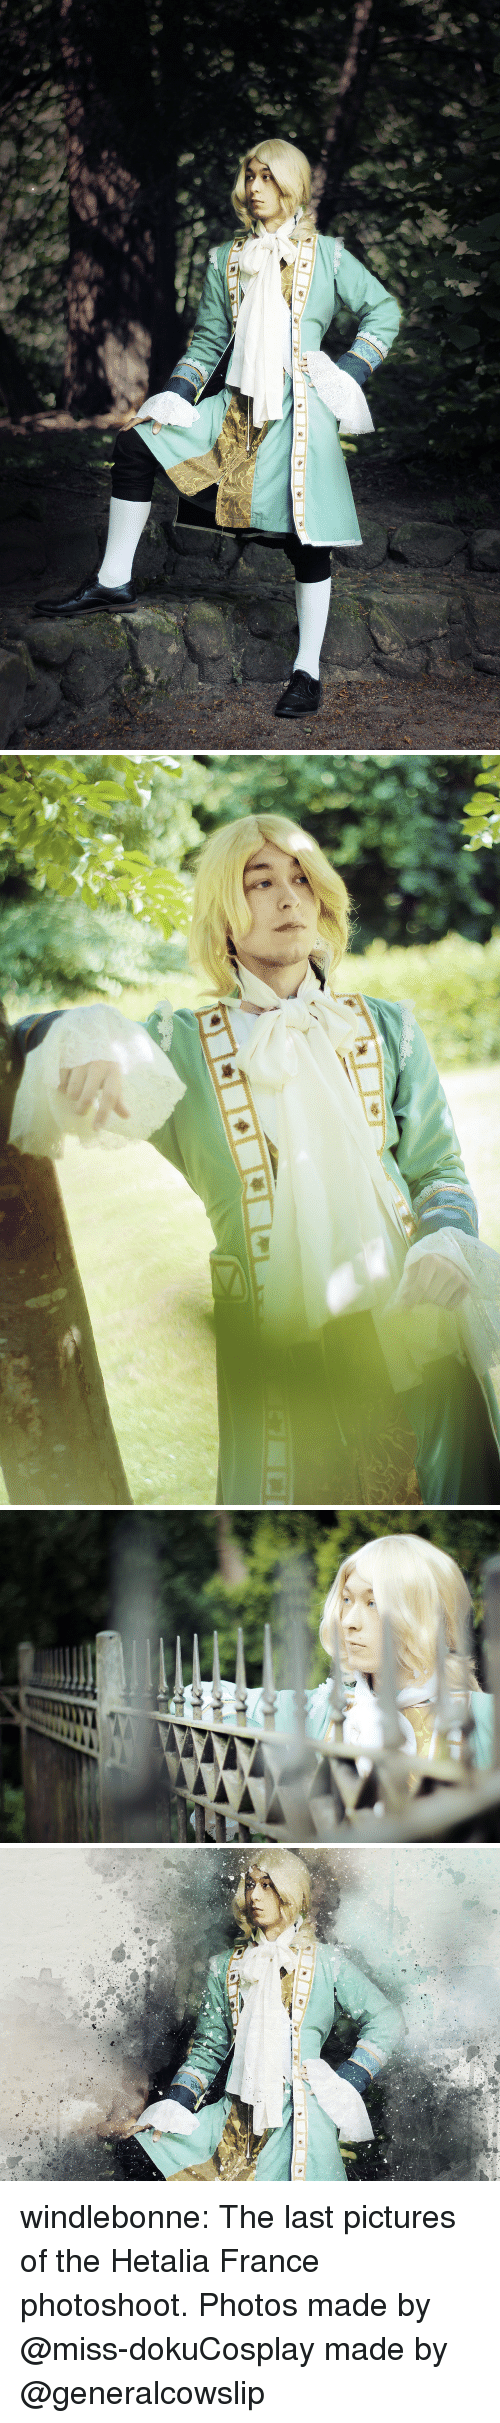 hetalia: windlebonne:  The last pictures of the Hetalia France photoshoot.Photos made by @miss-dokuCosplay made by @generalcowslip